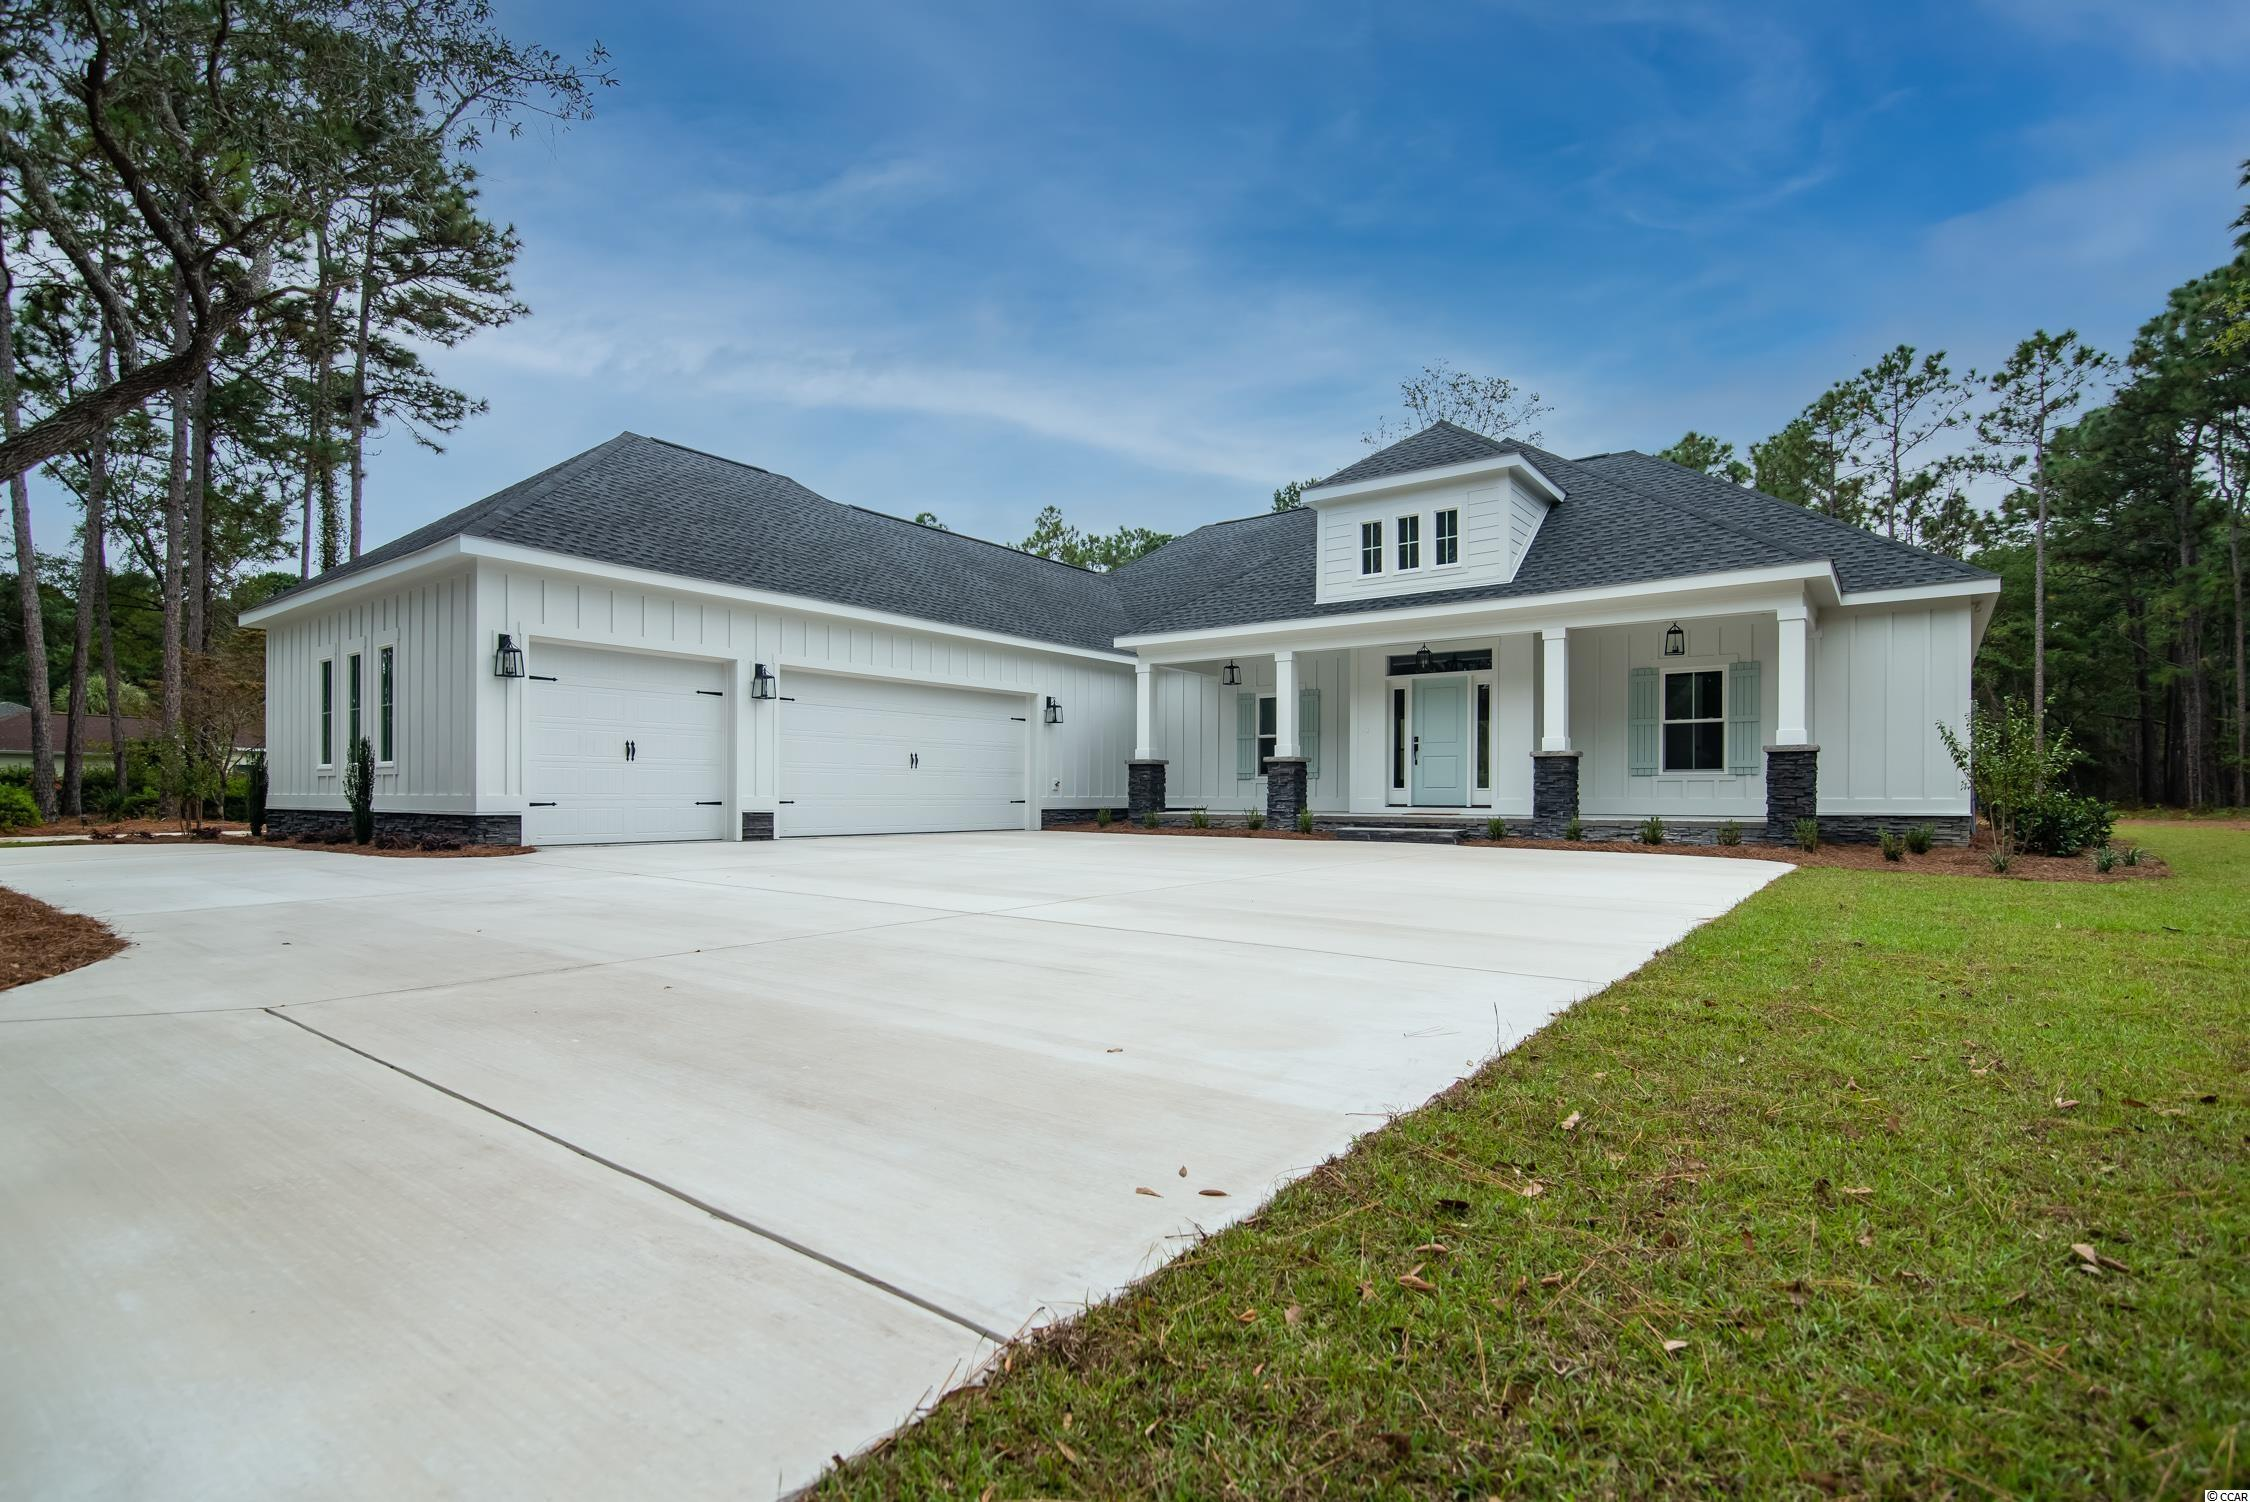 Beautiful Low Country home with all the coastal style you've been looking for. The home is currently under construction in Pawley's Plantation. If you put this one under contract now you can be part of the process moving forward.